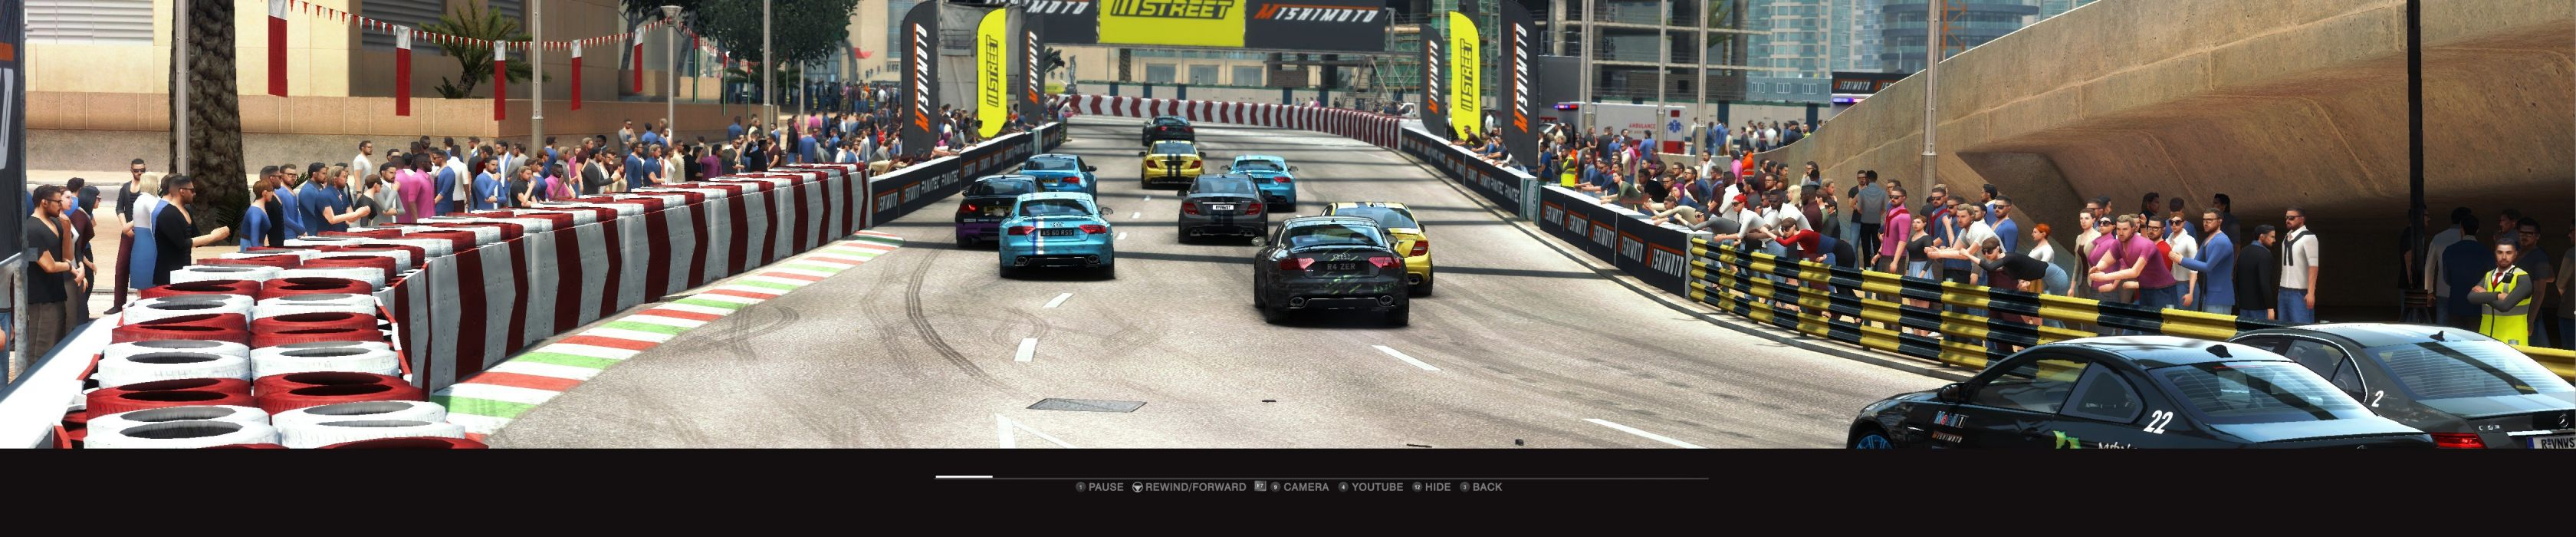 GRID AUTOSPORT racing race auto game action open-wheel tuning supercar (4) wallpaper